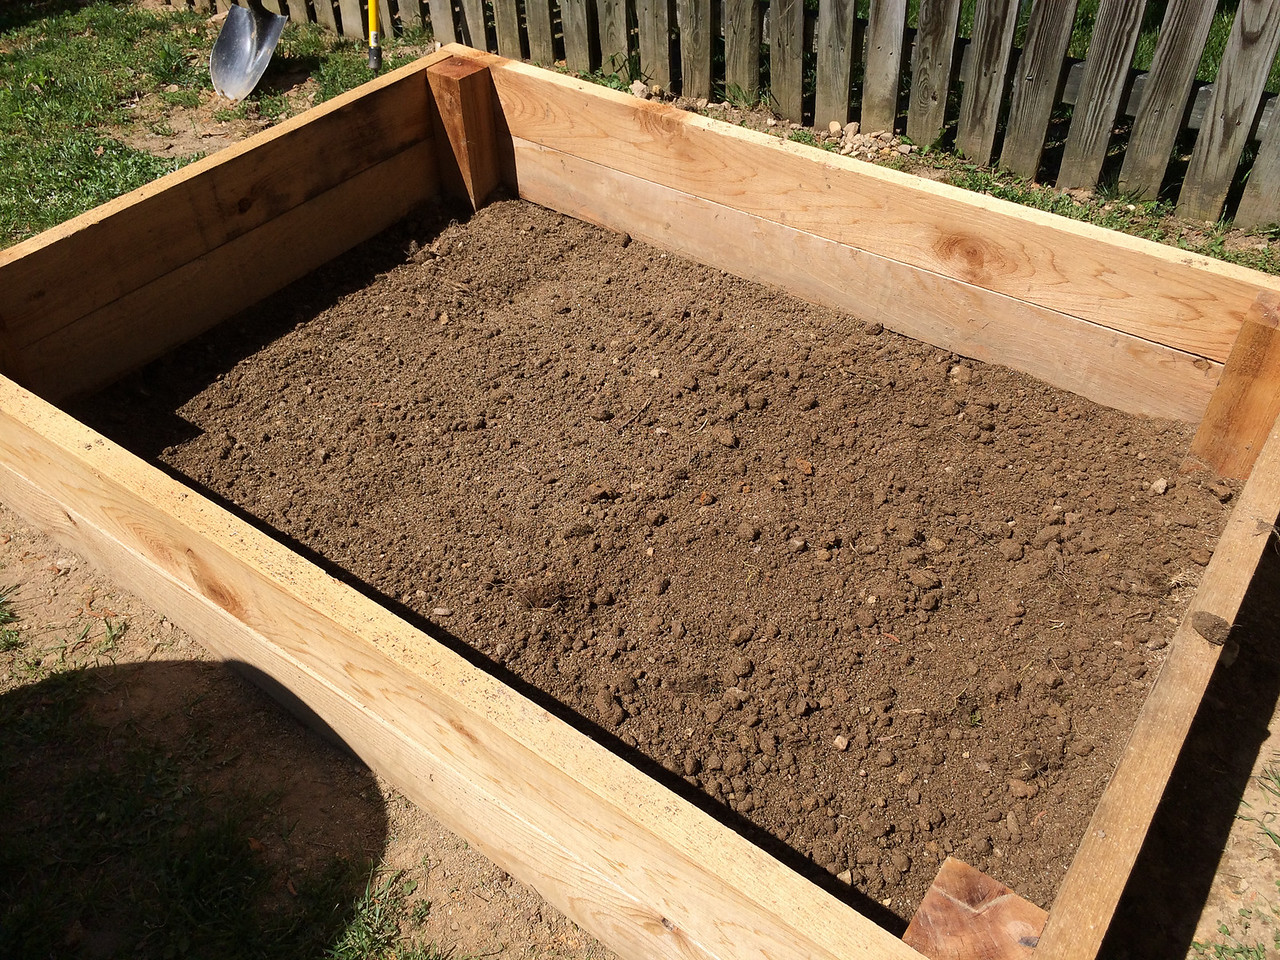 Having learned my lesson, I carefully prepared the second bed for laying the hardware cloth. Shoveled out enough dirt so I could rake the ground flat, leaving 90 degree angles everywhere. I also made sure not to step in the bed after this point.